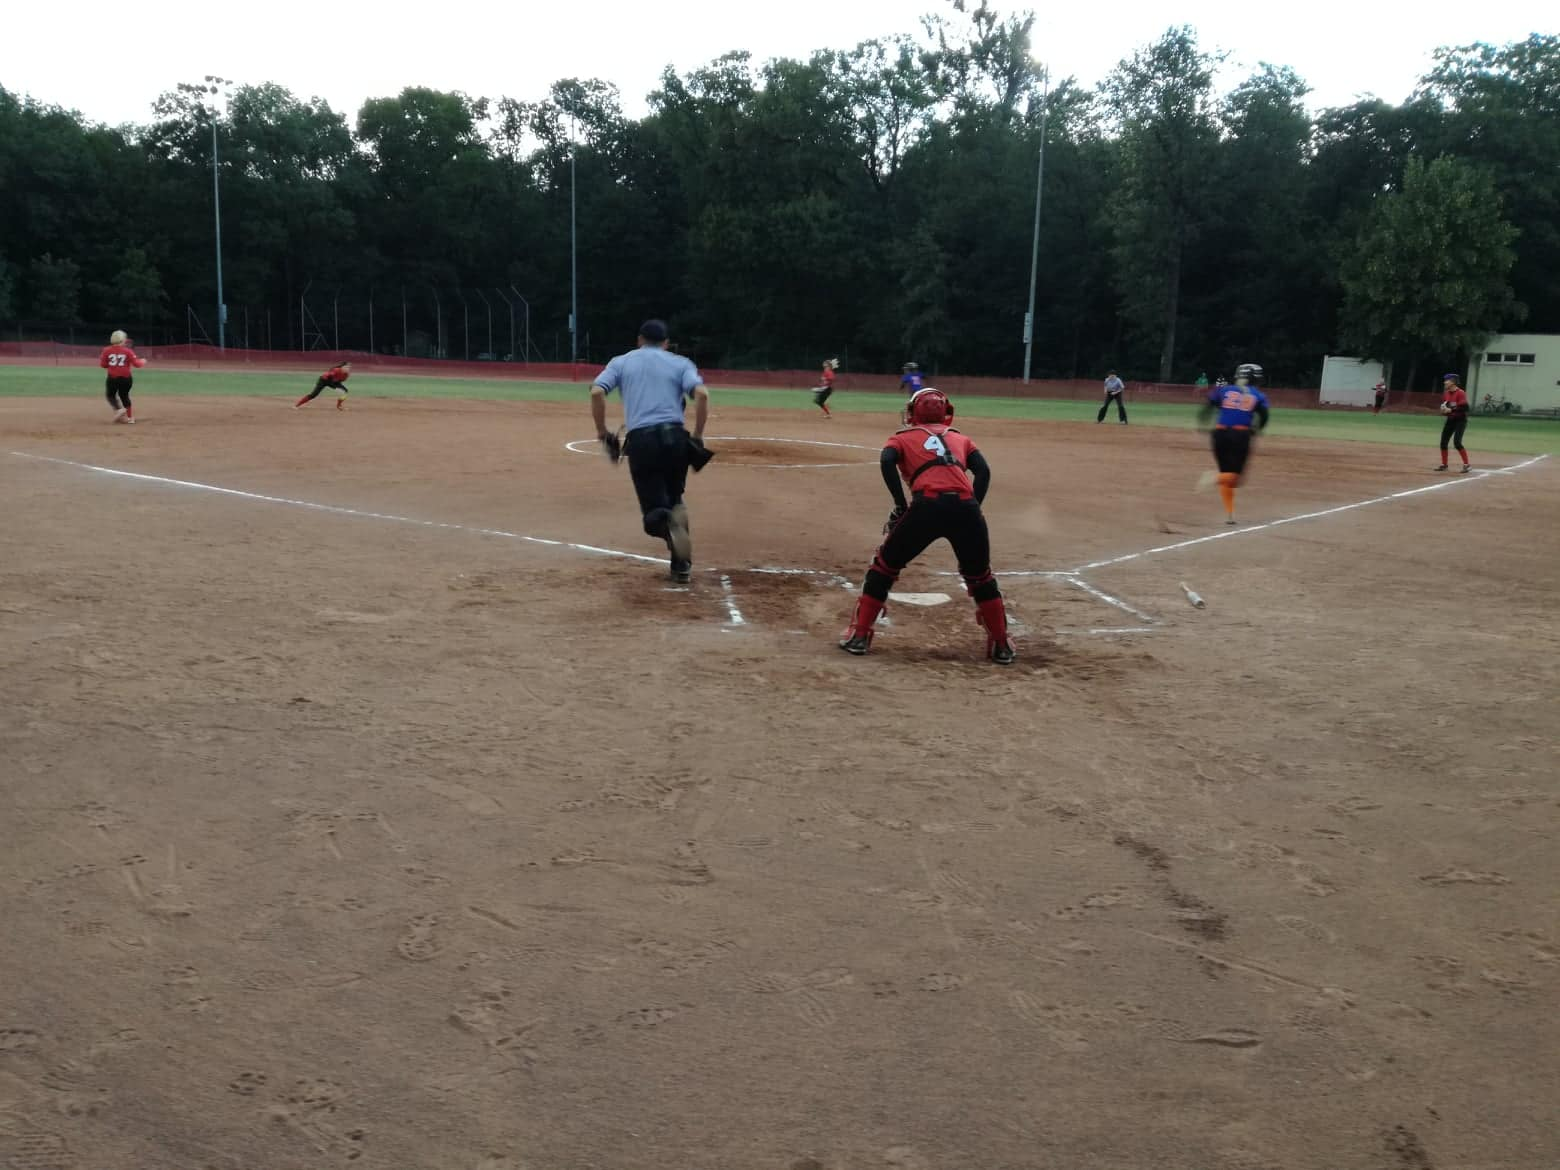 Jess Mehr making her way to first base